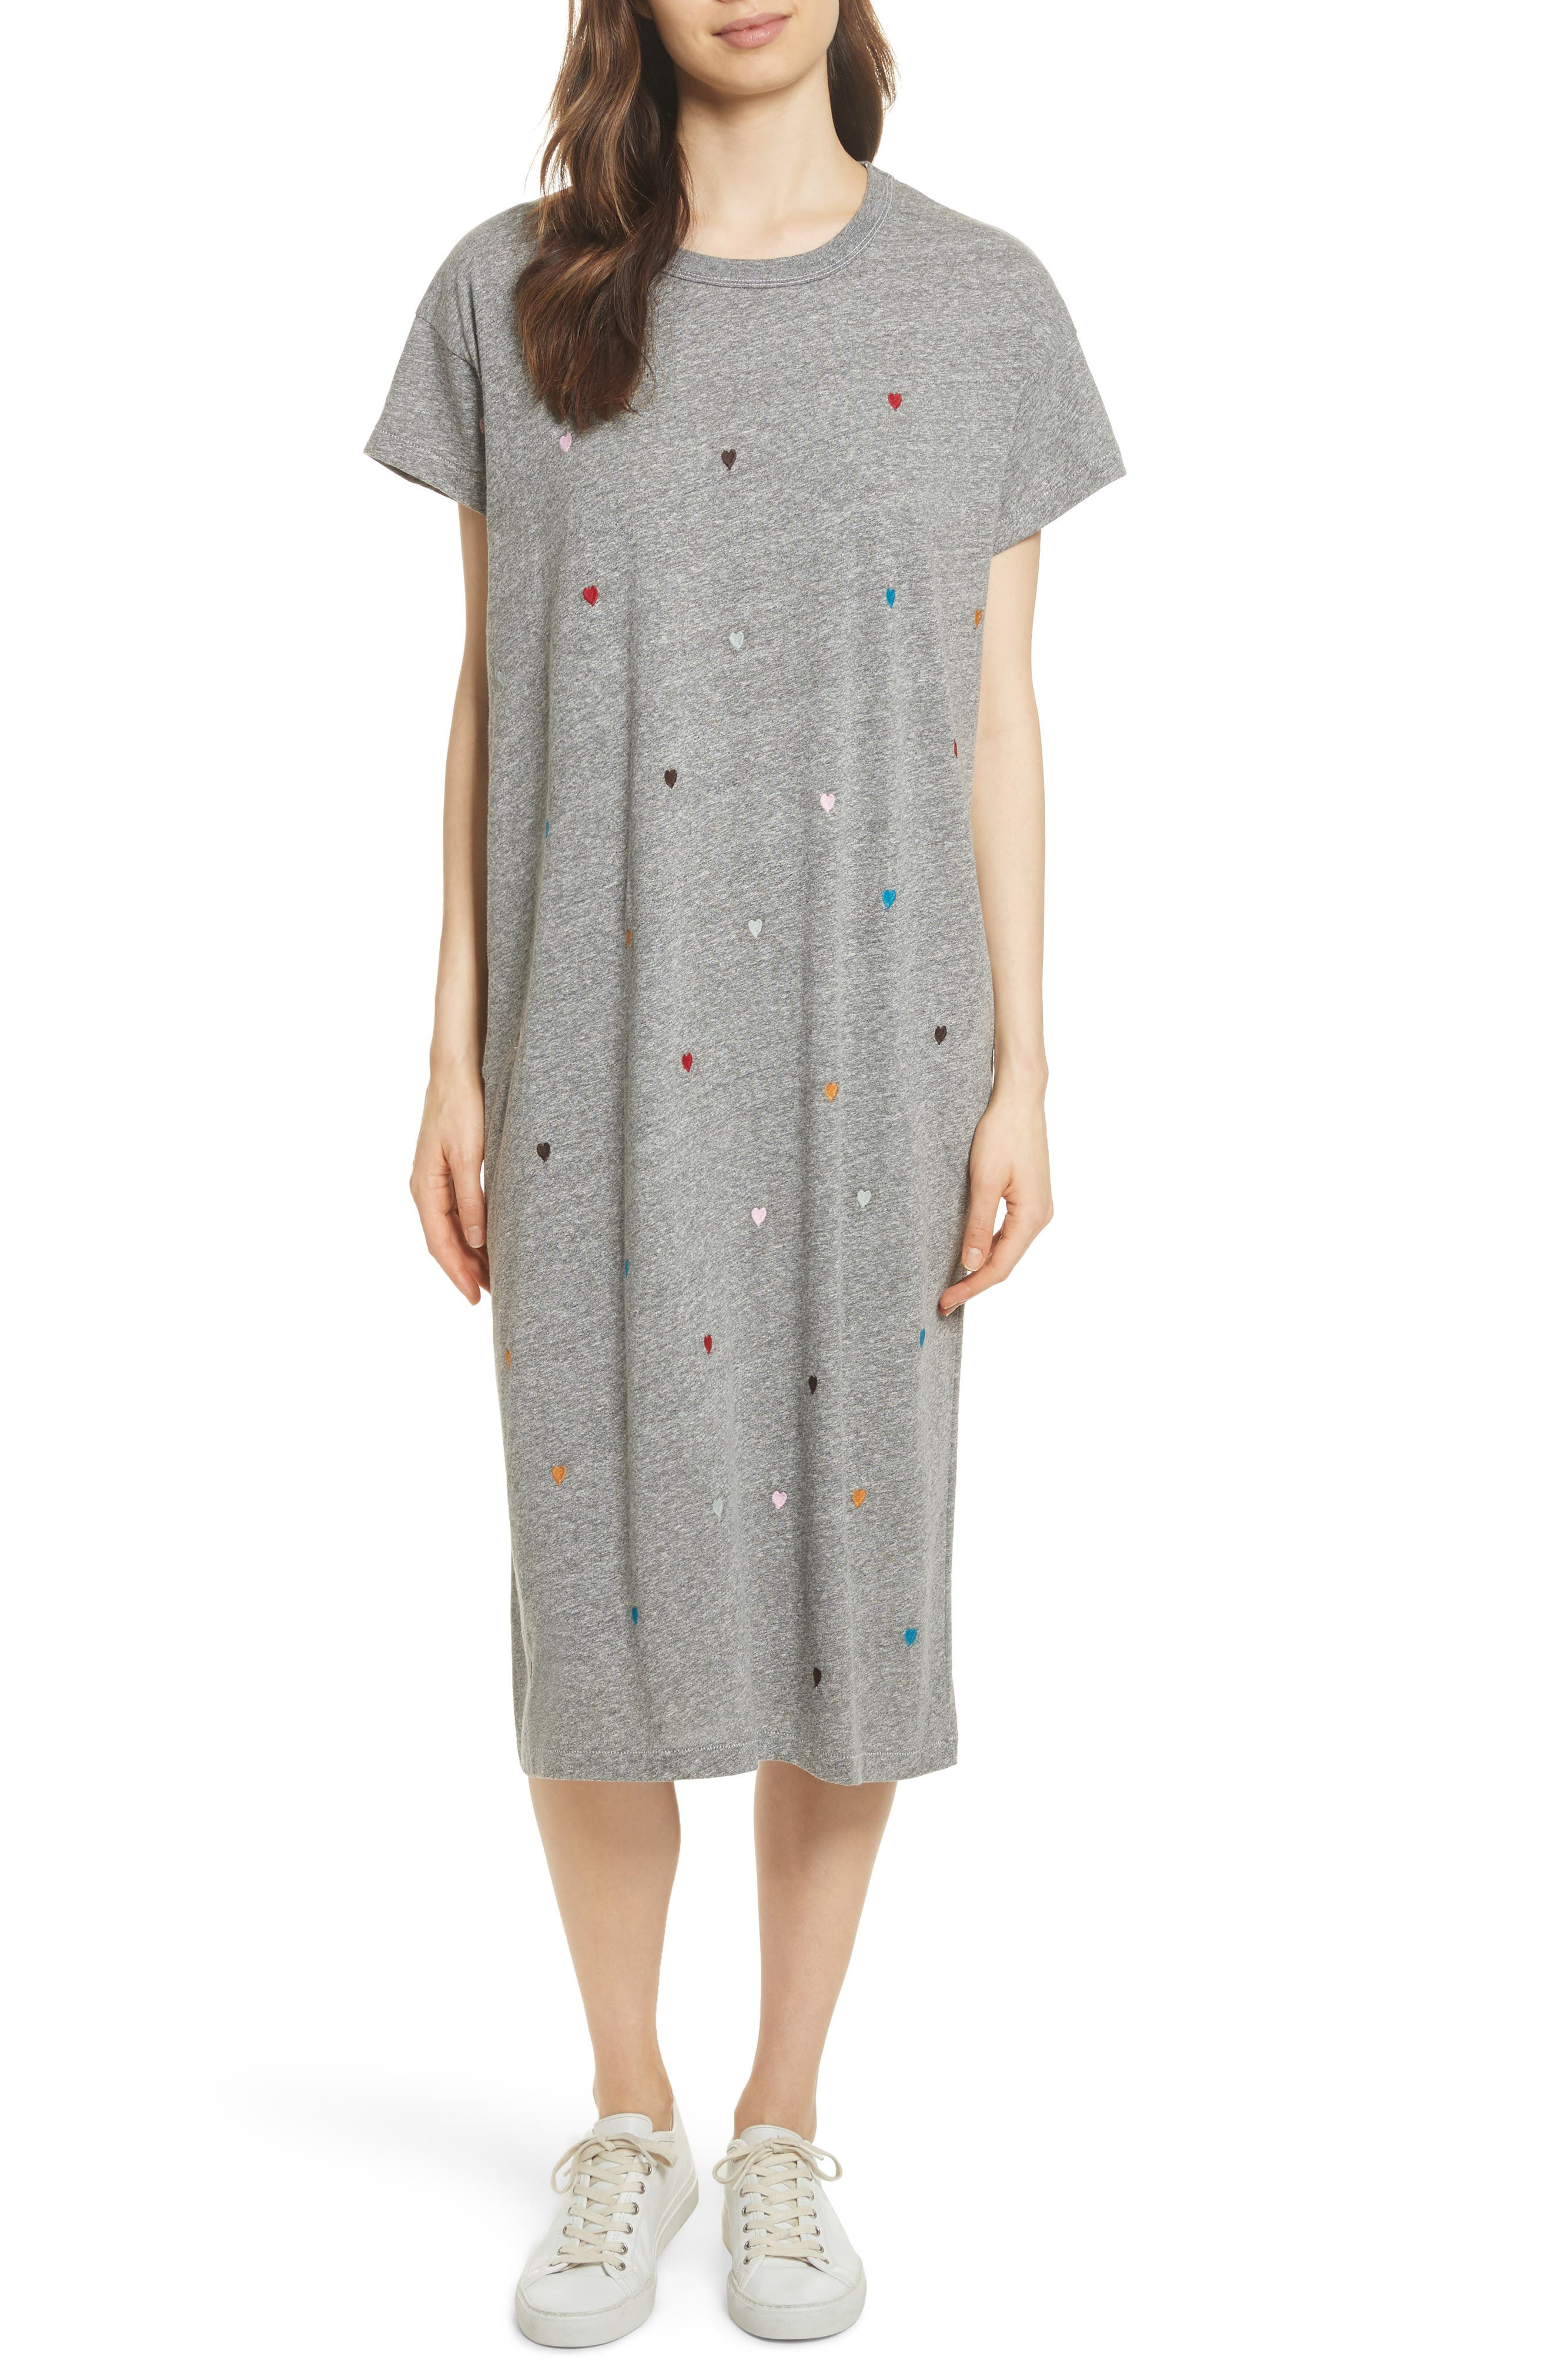 The Boxy Embroidered T-Shirt Dress,                             Main thumbnail 1, color,                             Grey/ Heart Embroidery